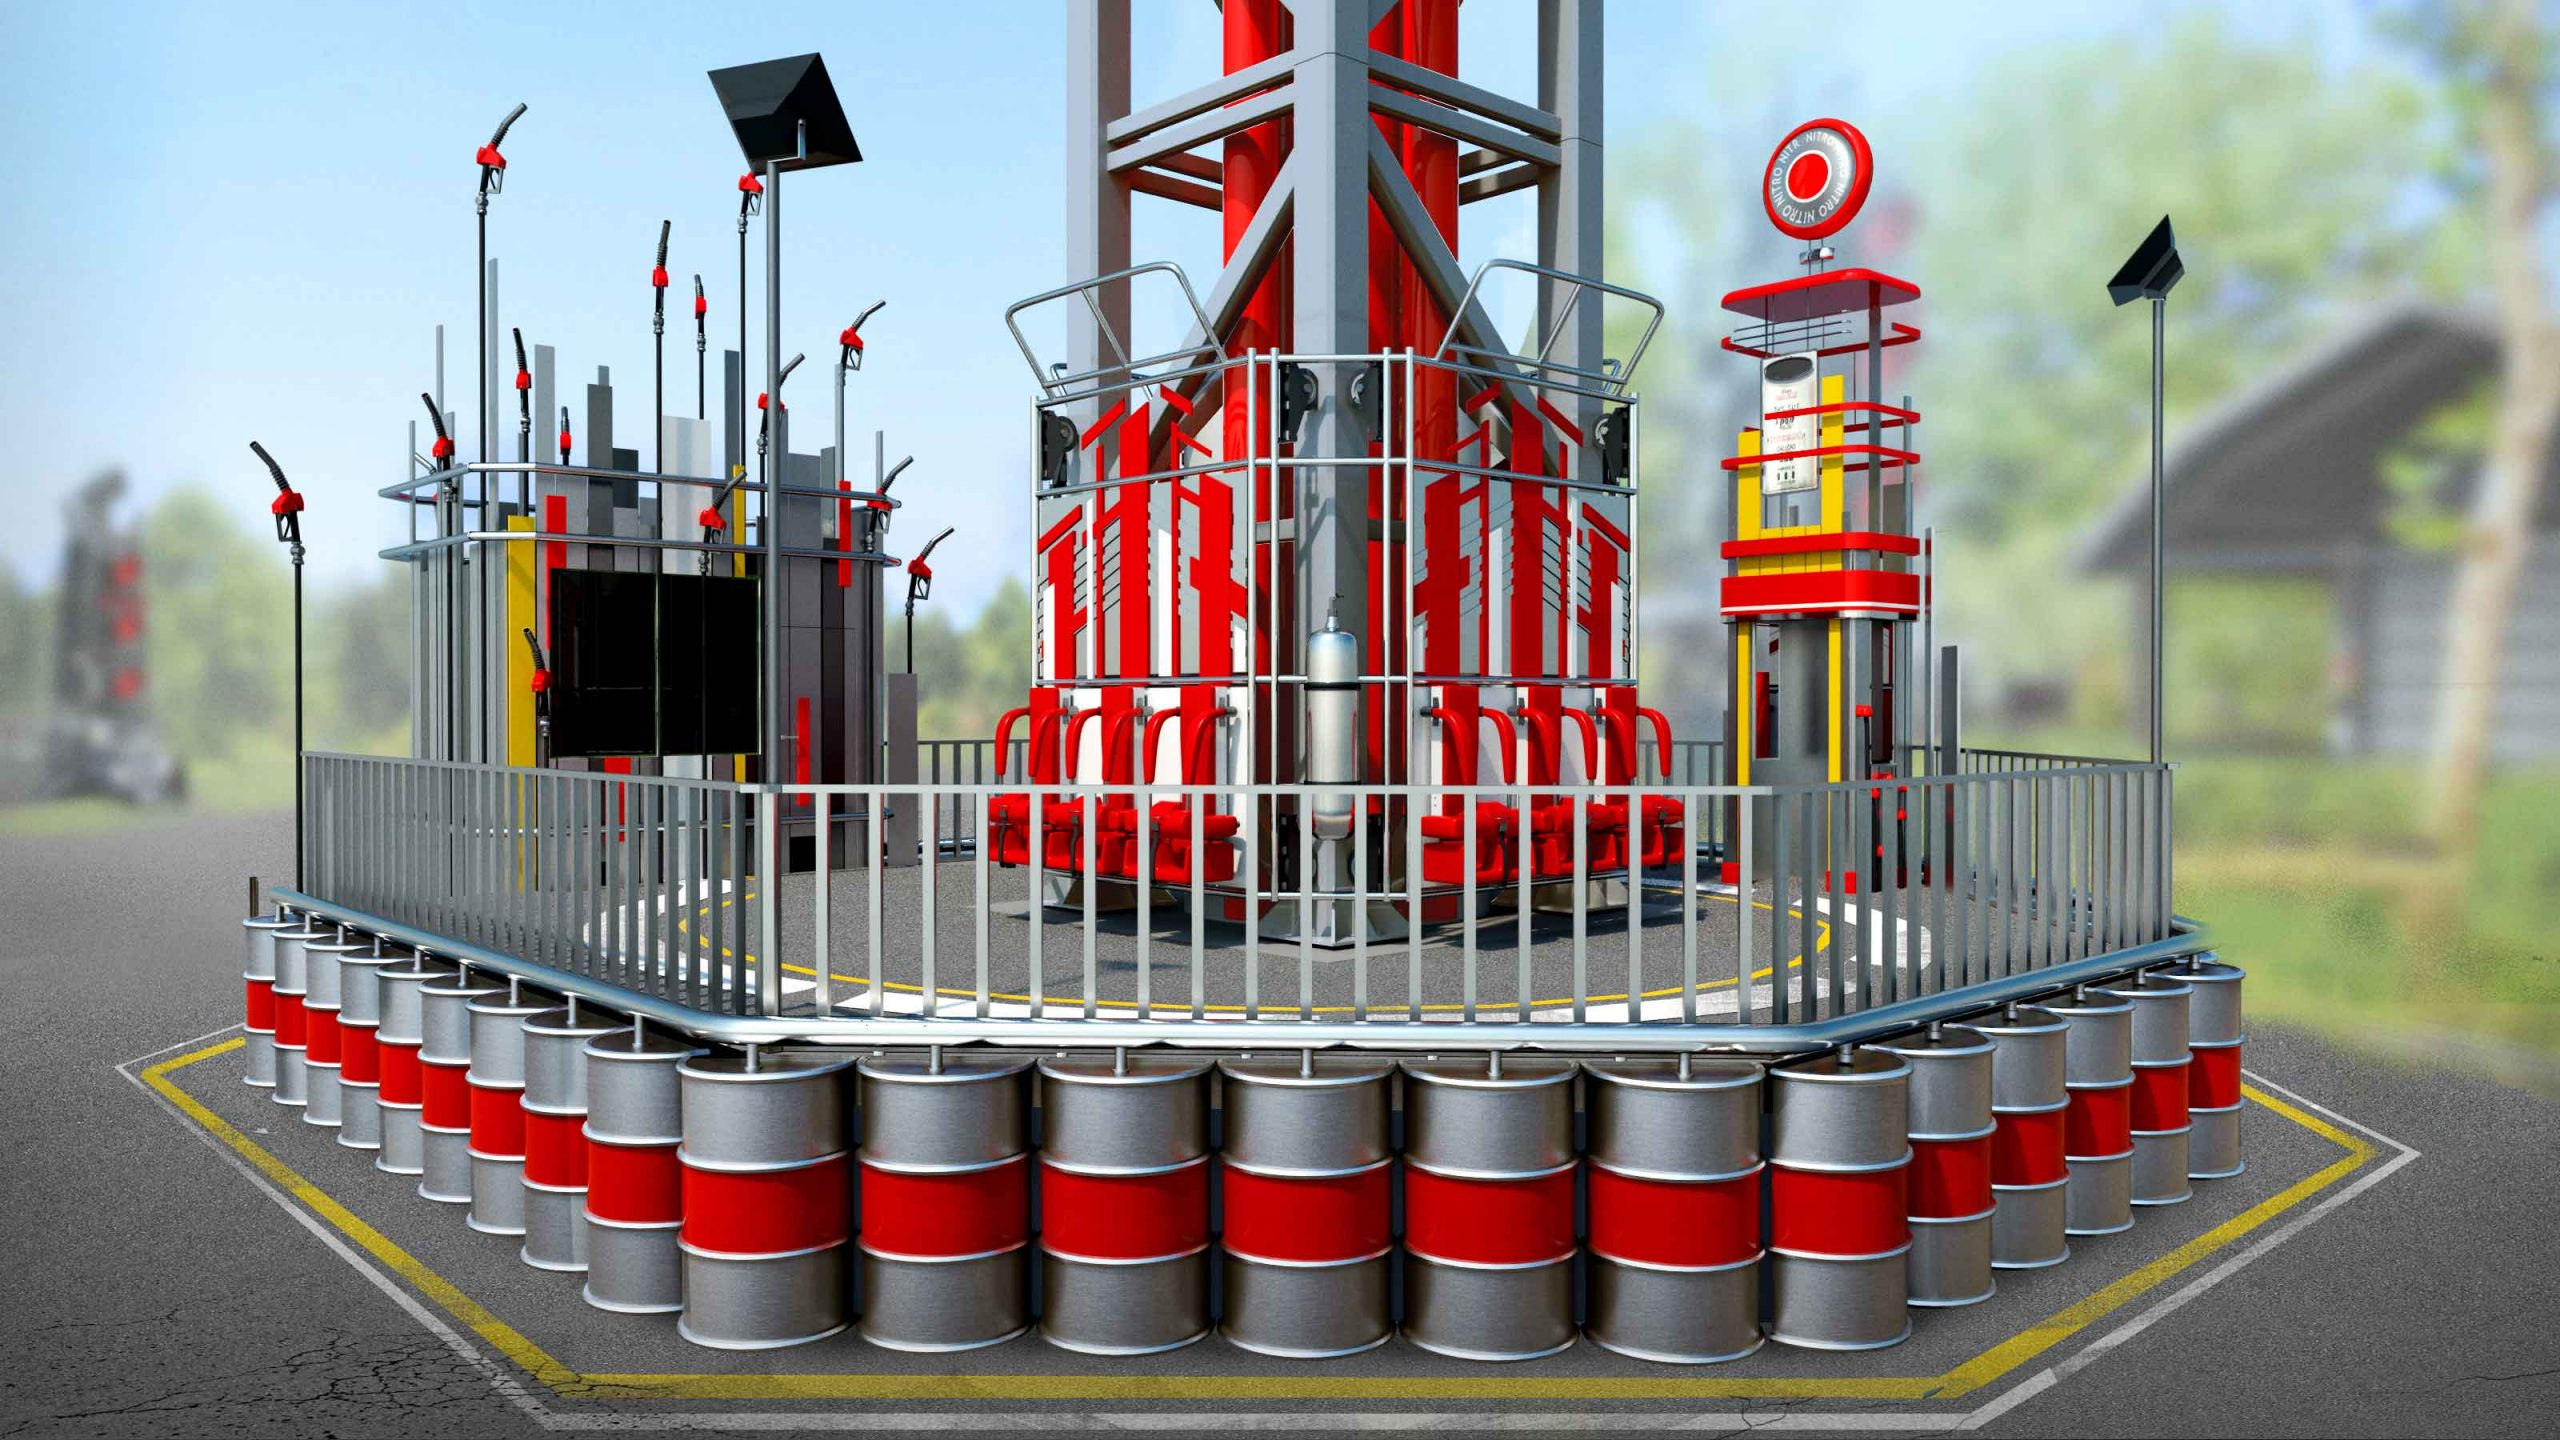 Design of Space Shot portal at Walibi Holland